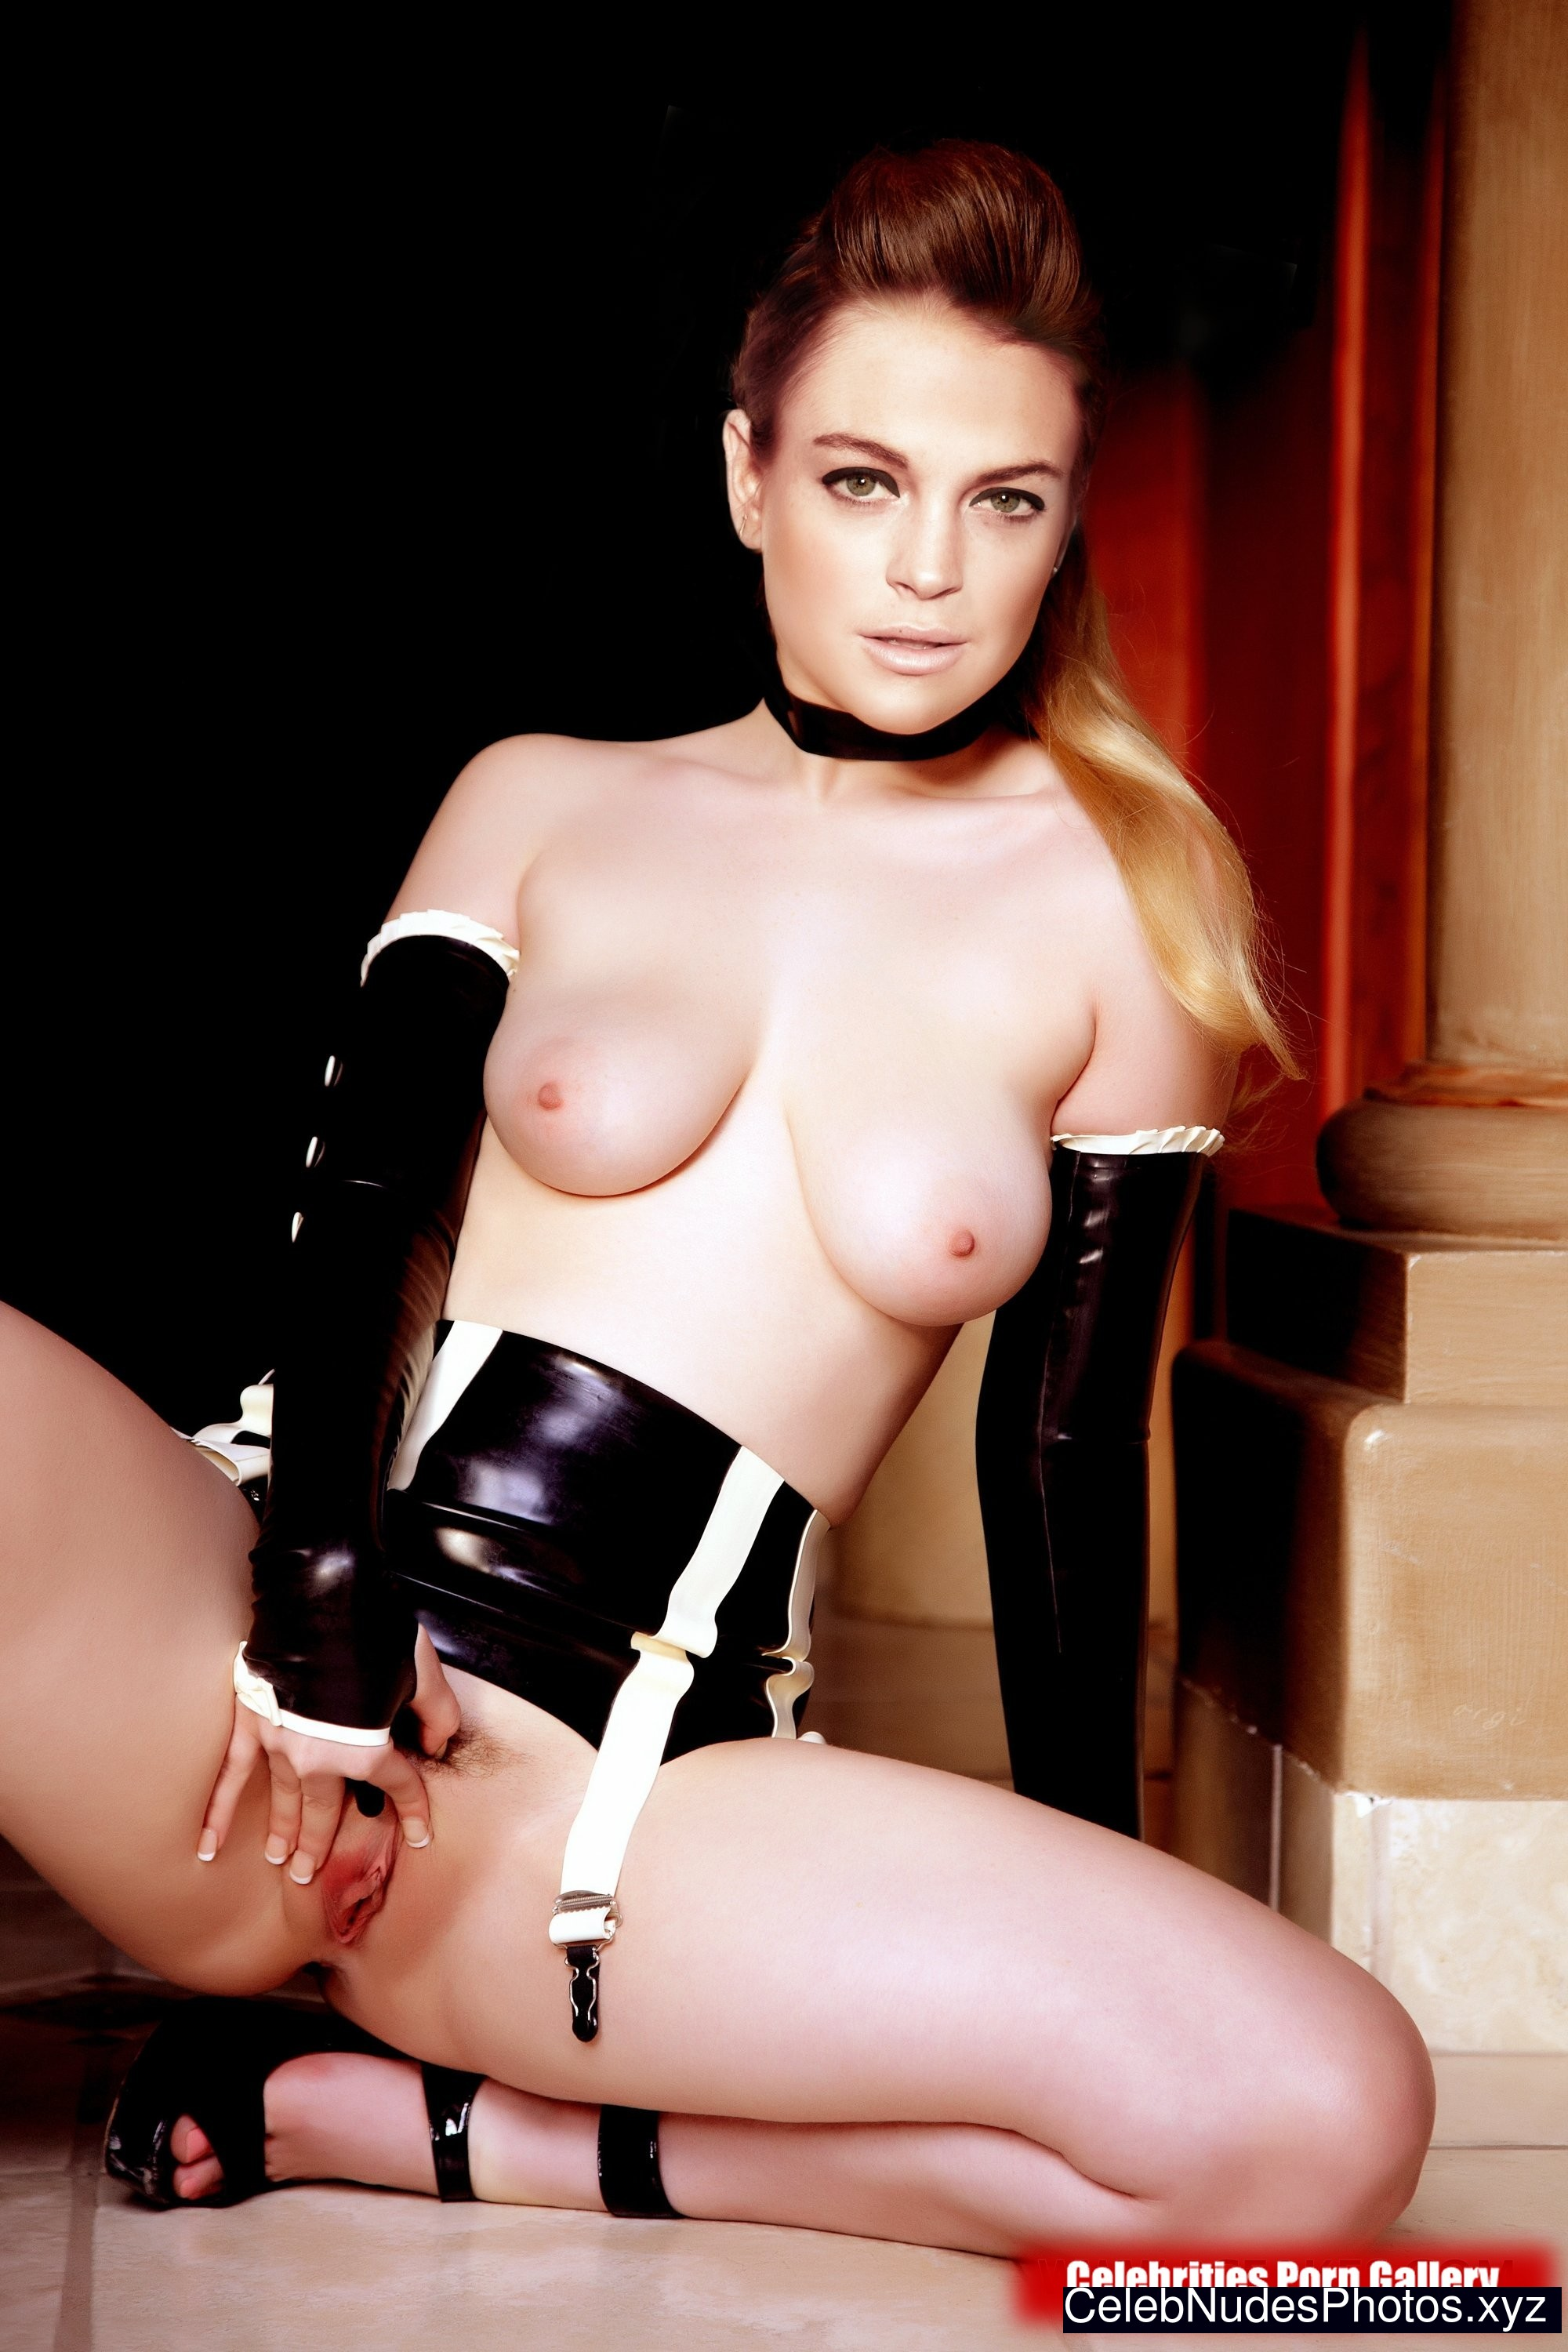 Nude linsey lohan pics